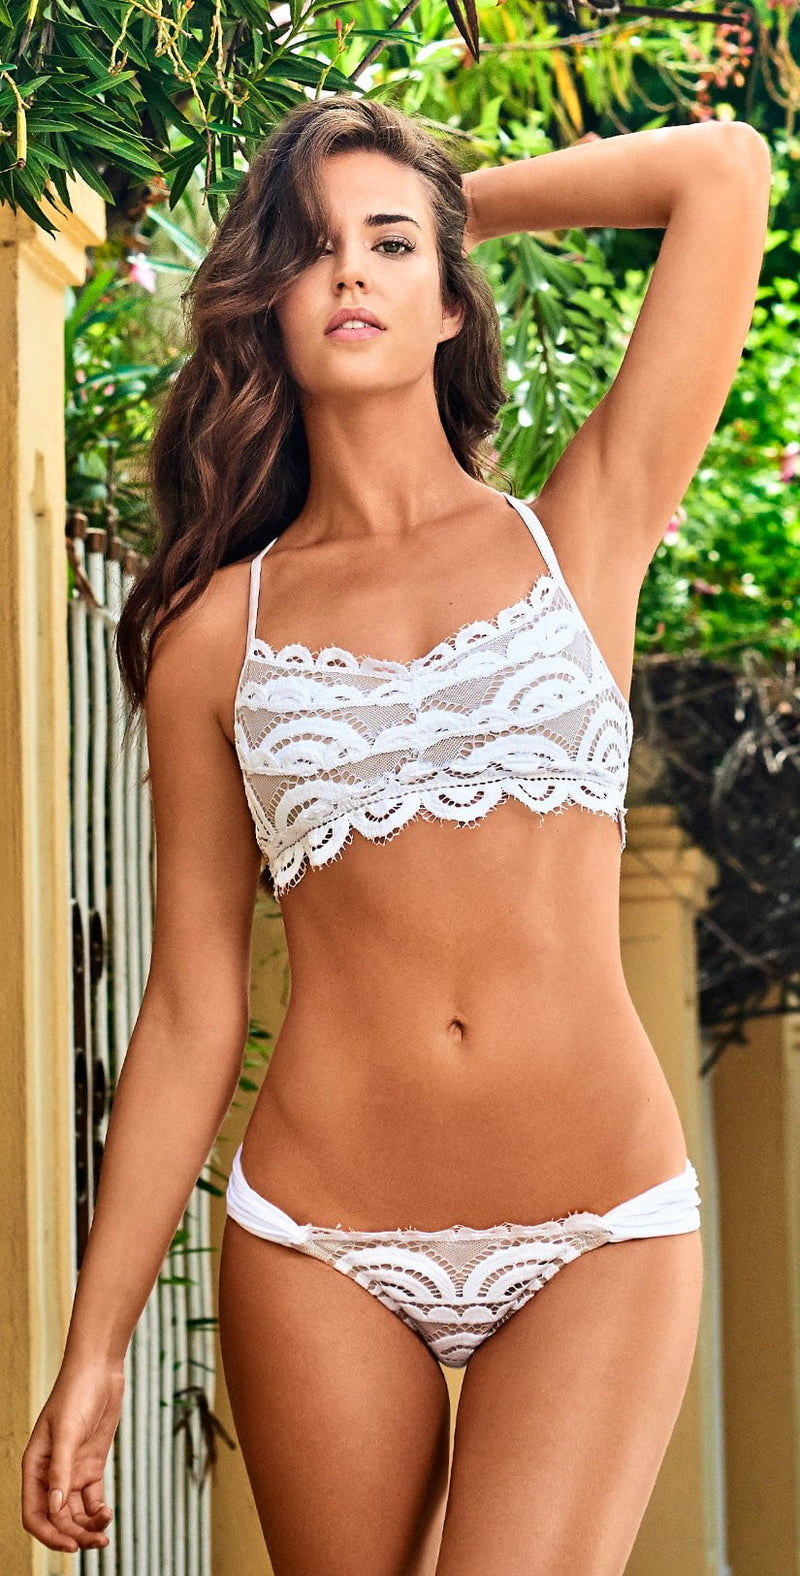 PilyQ Water Lily Lace Bralette Top in White WAT-131B: